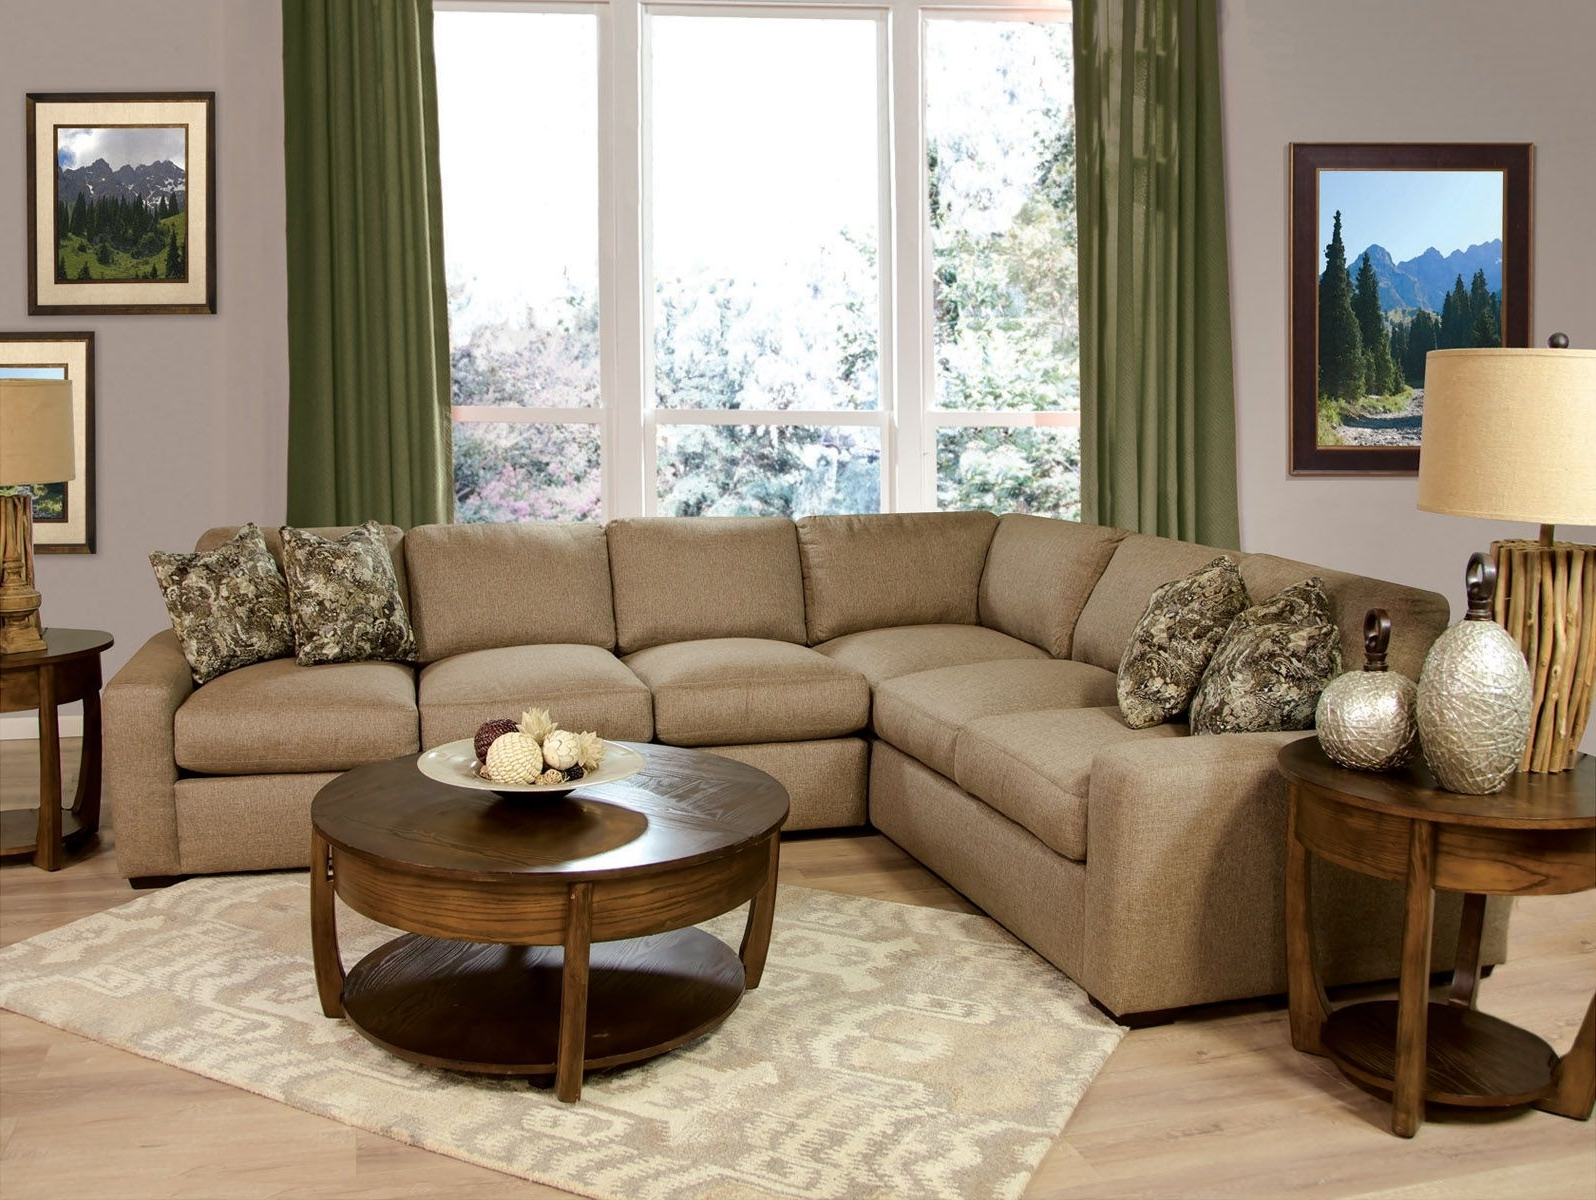 Favorite England Sectional Sofas Intended For England Furniture 2t00 64, 2t00 39, And 2t00 27 With Grande (View 20 of 20)